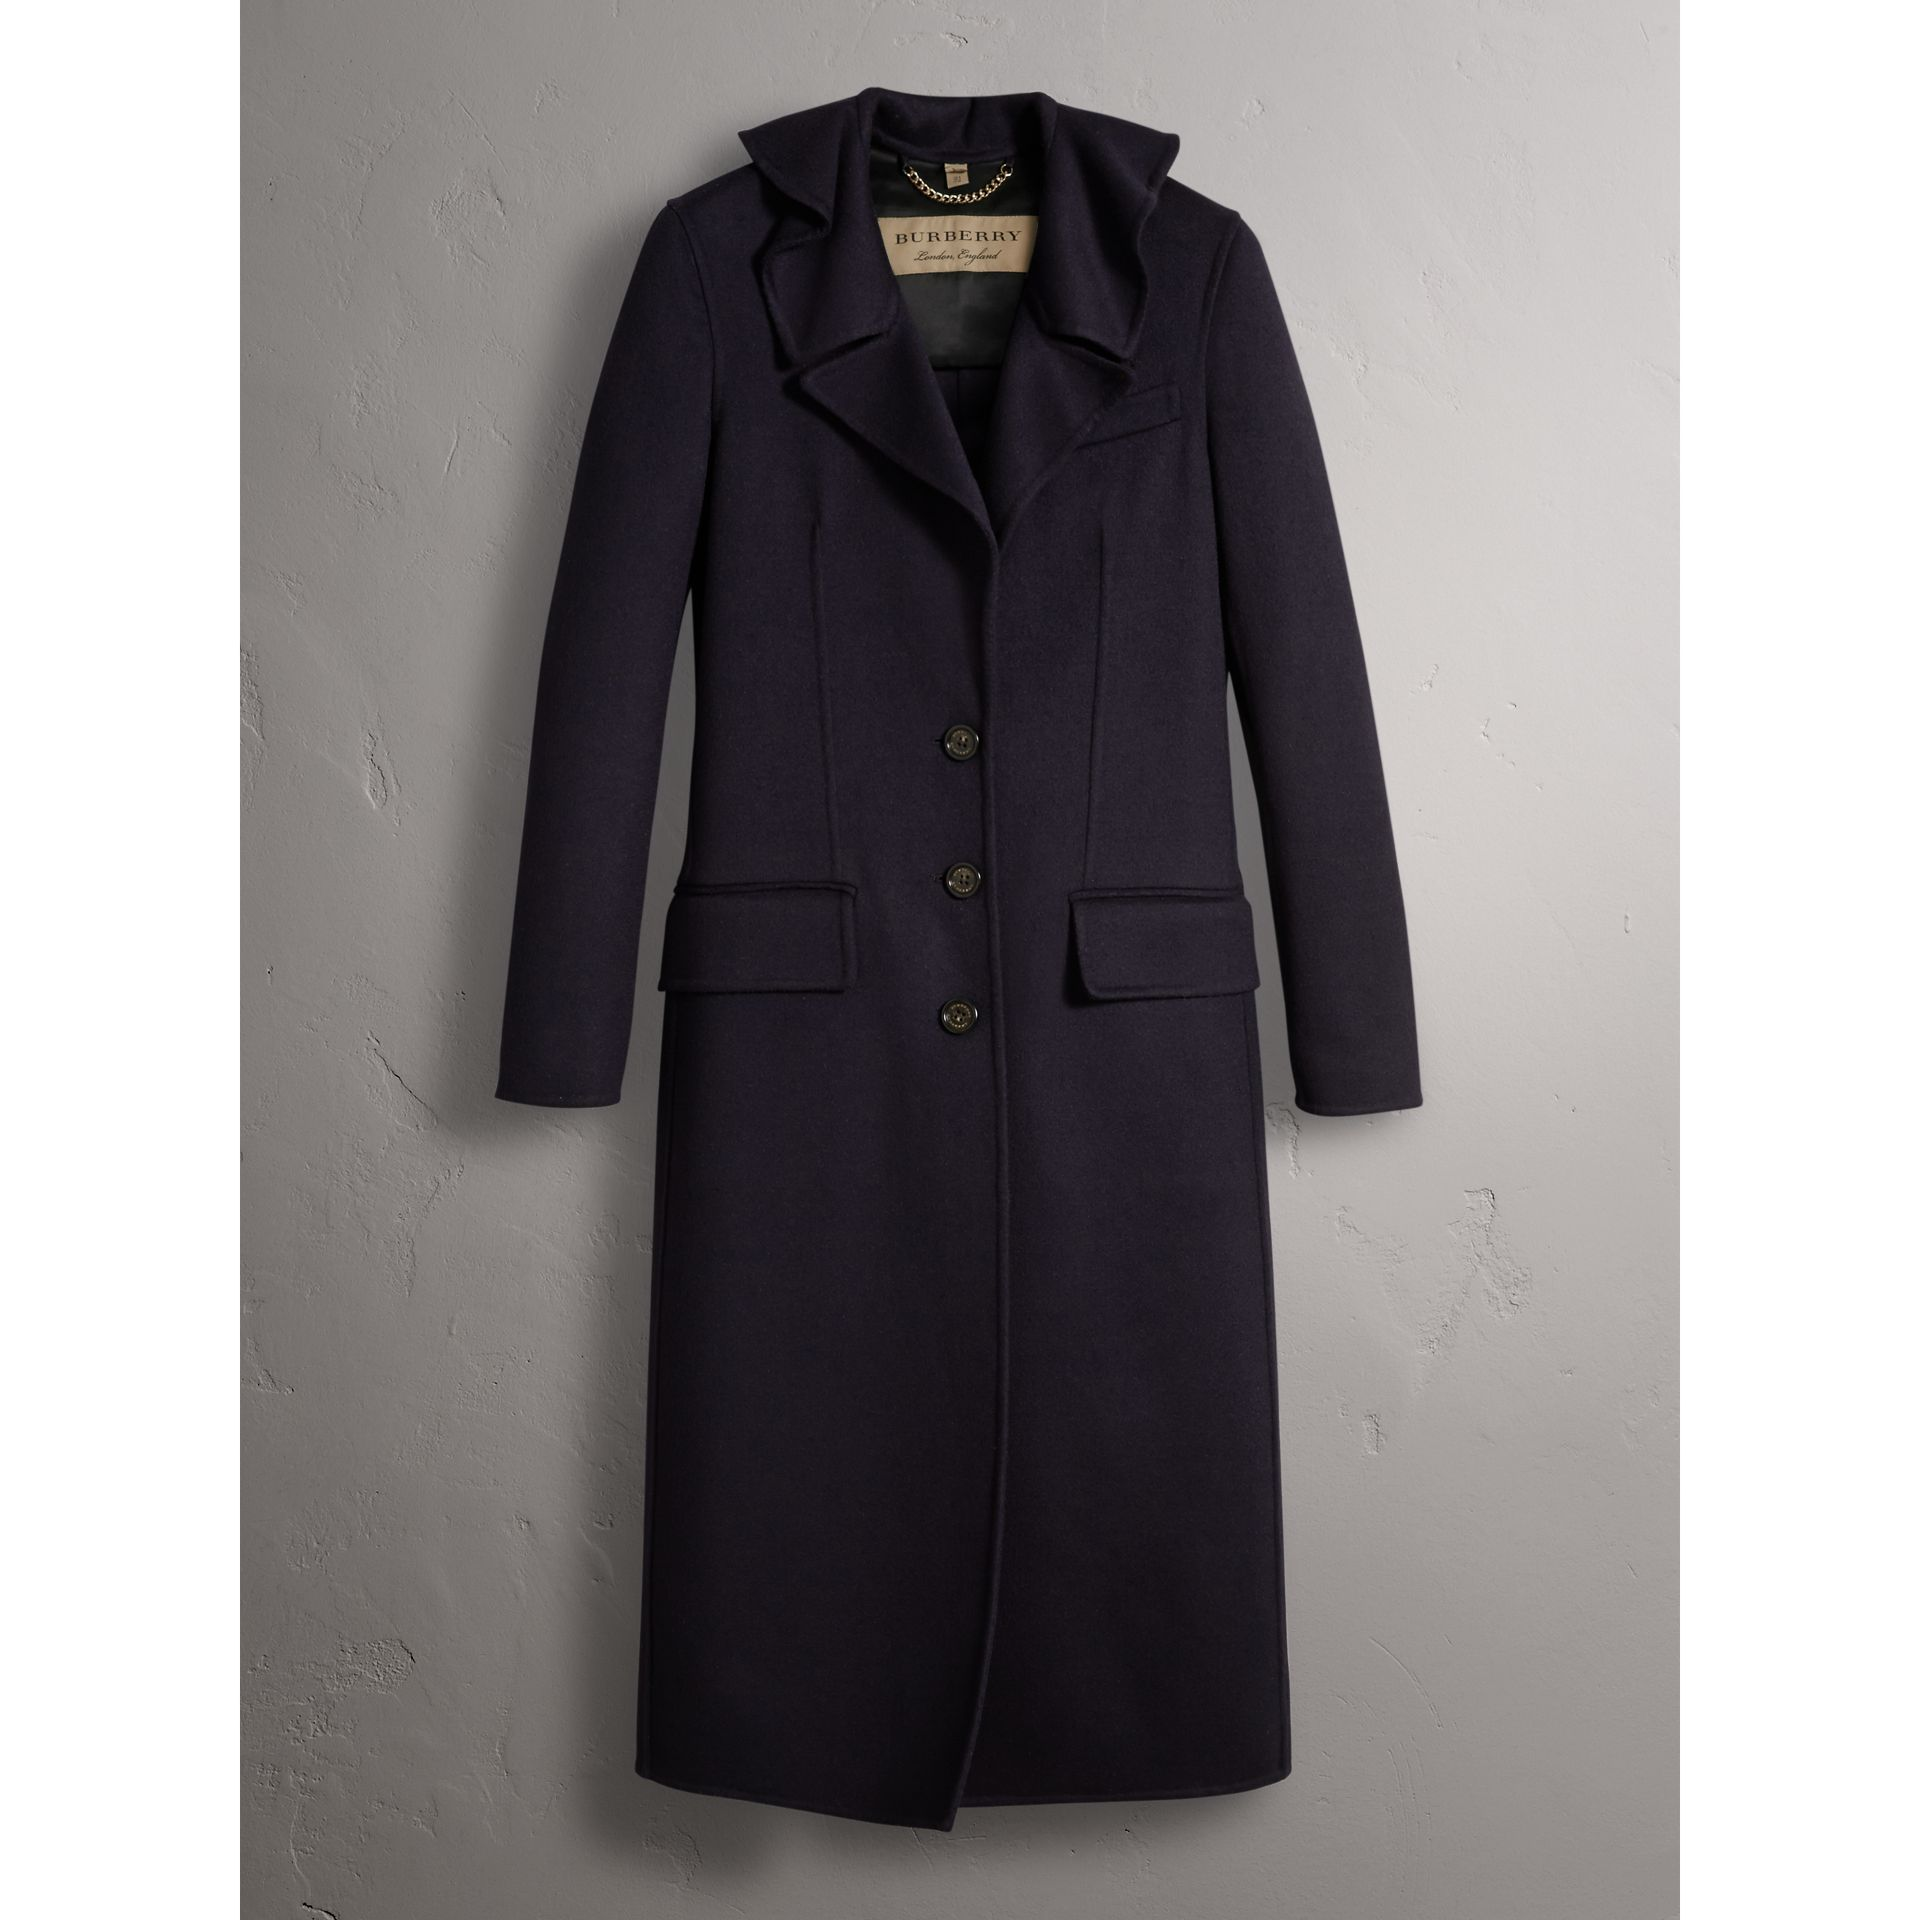 Ruffled Collar Wool Cashmere Coat in Navy - Women | Burberry - gallery image 3